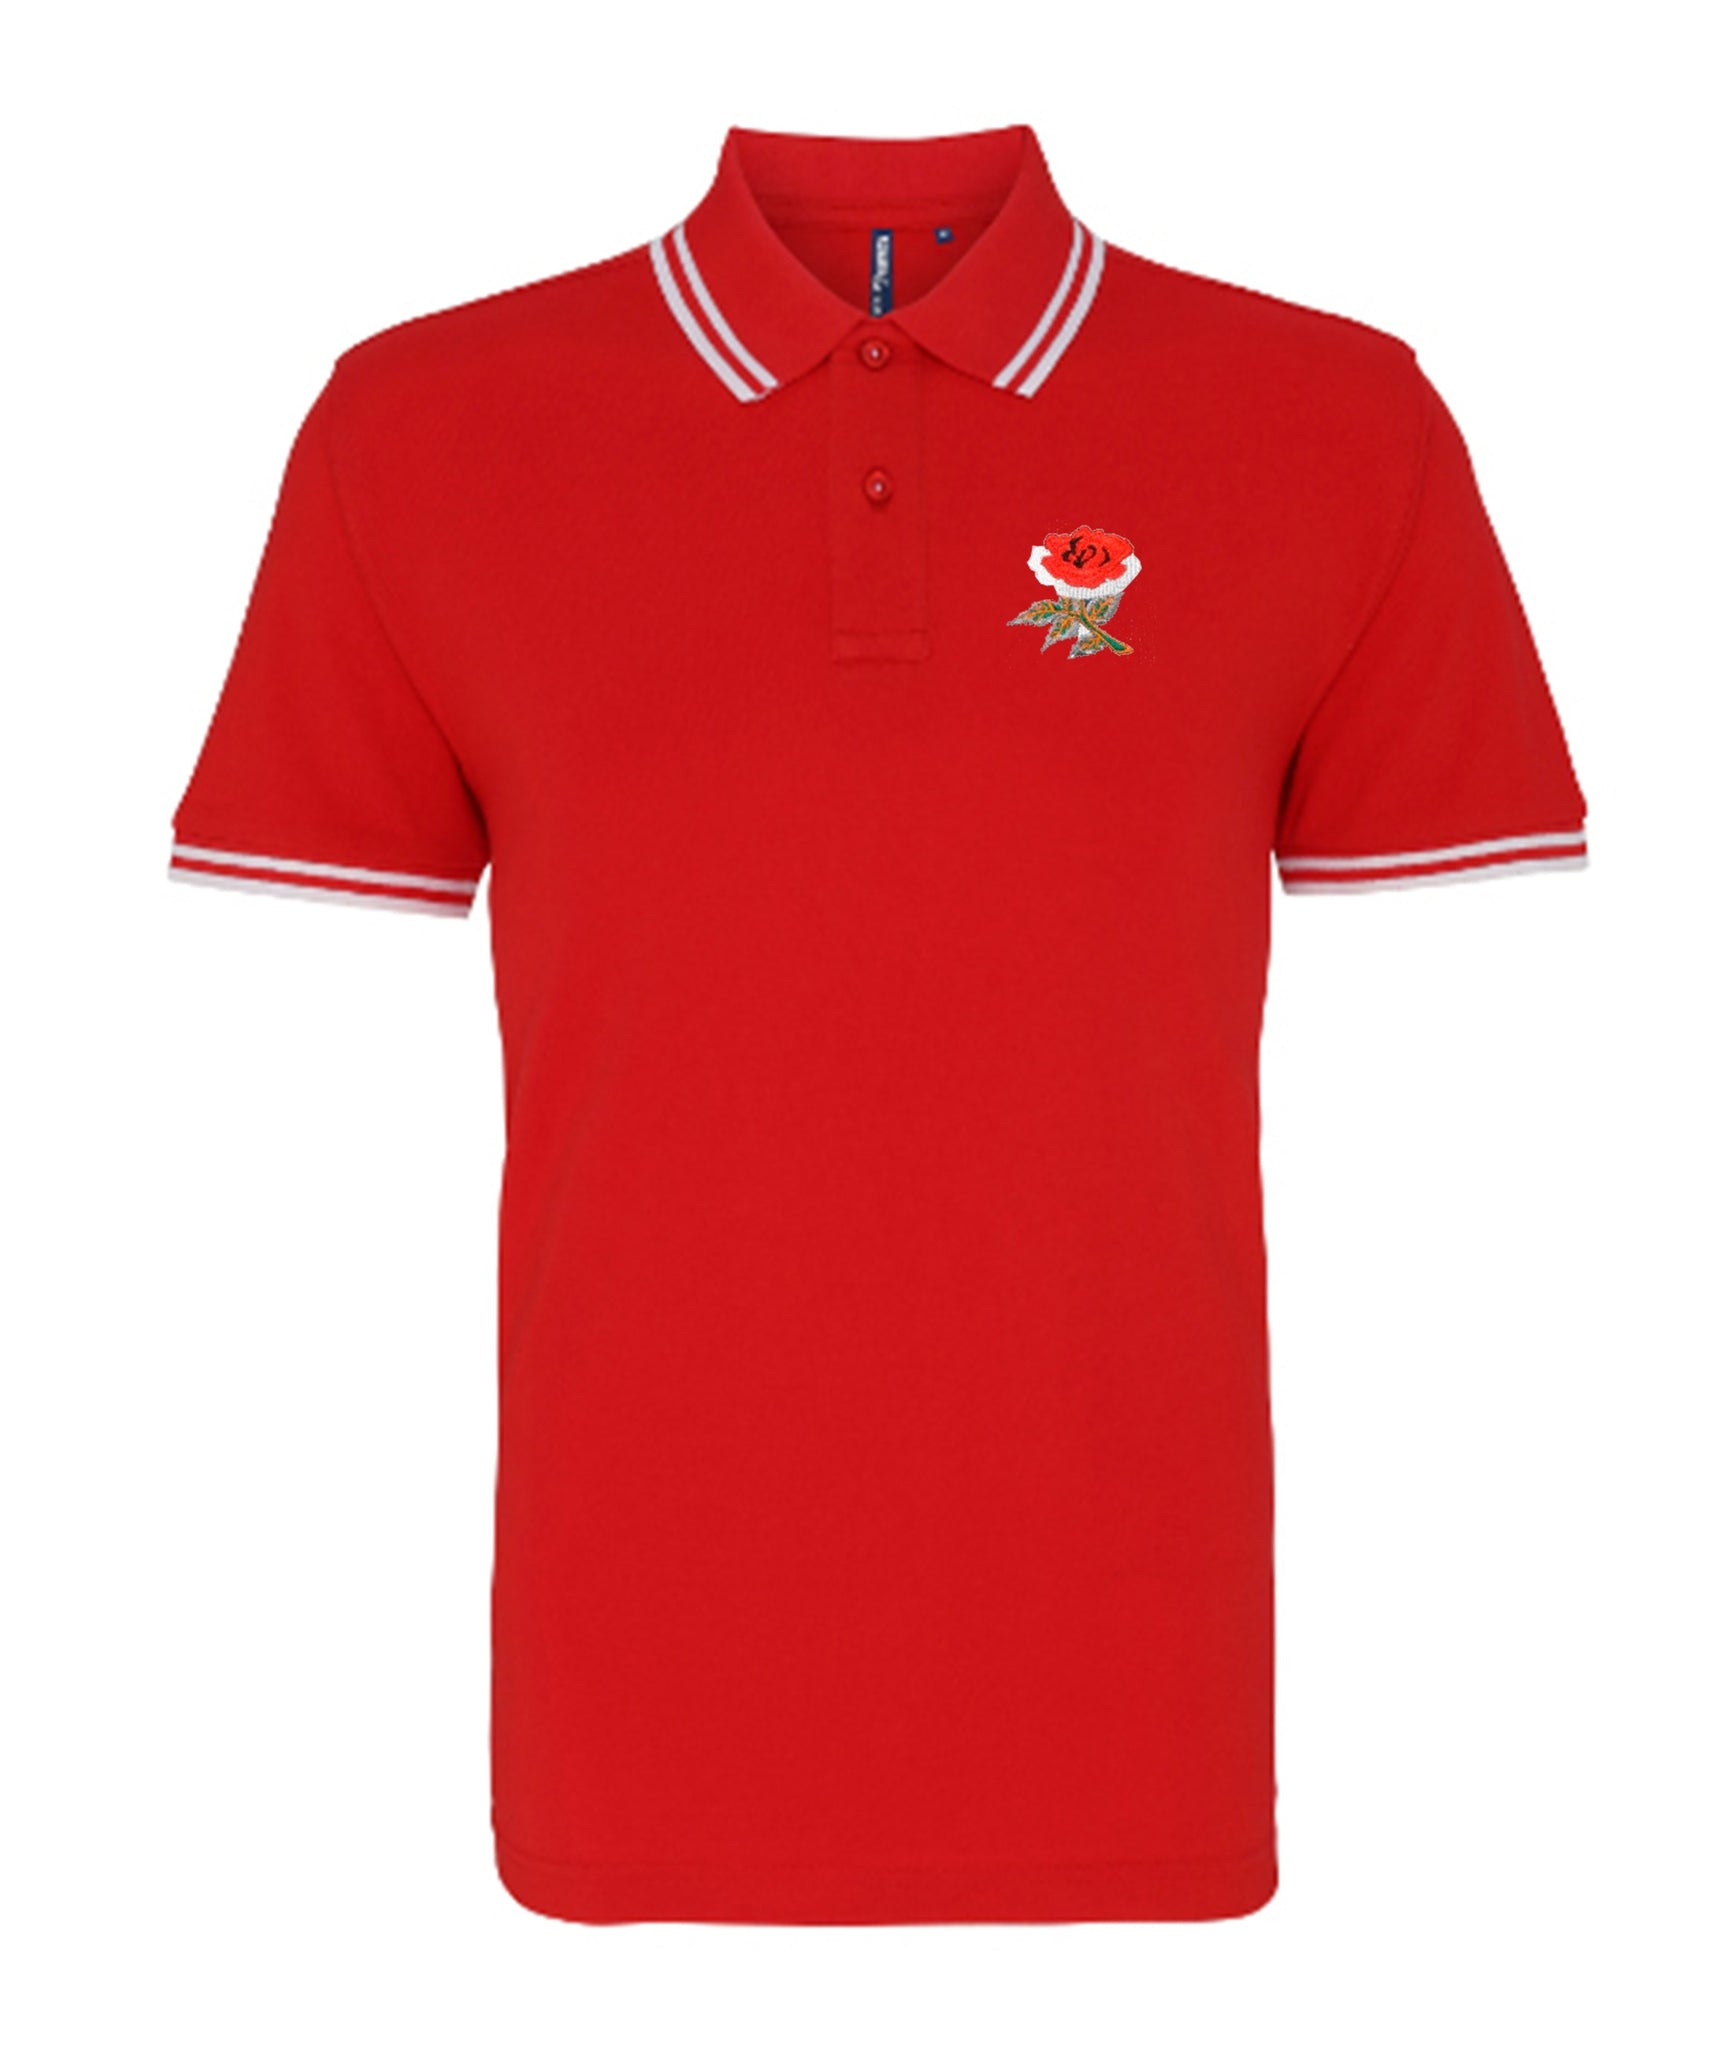 England Retro Rugby Iconic Polo - Polo